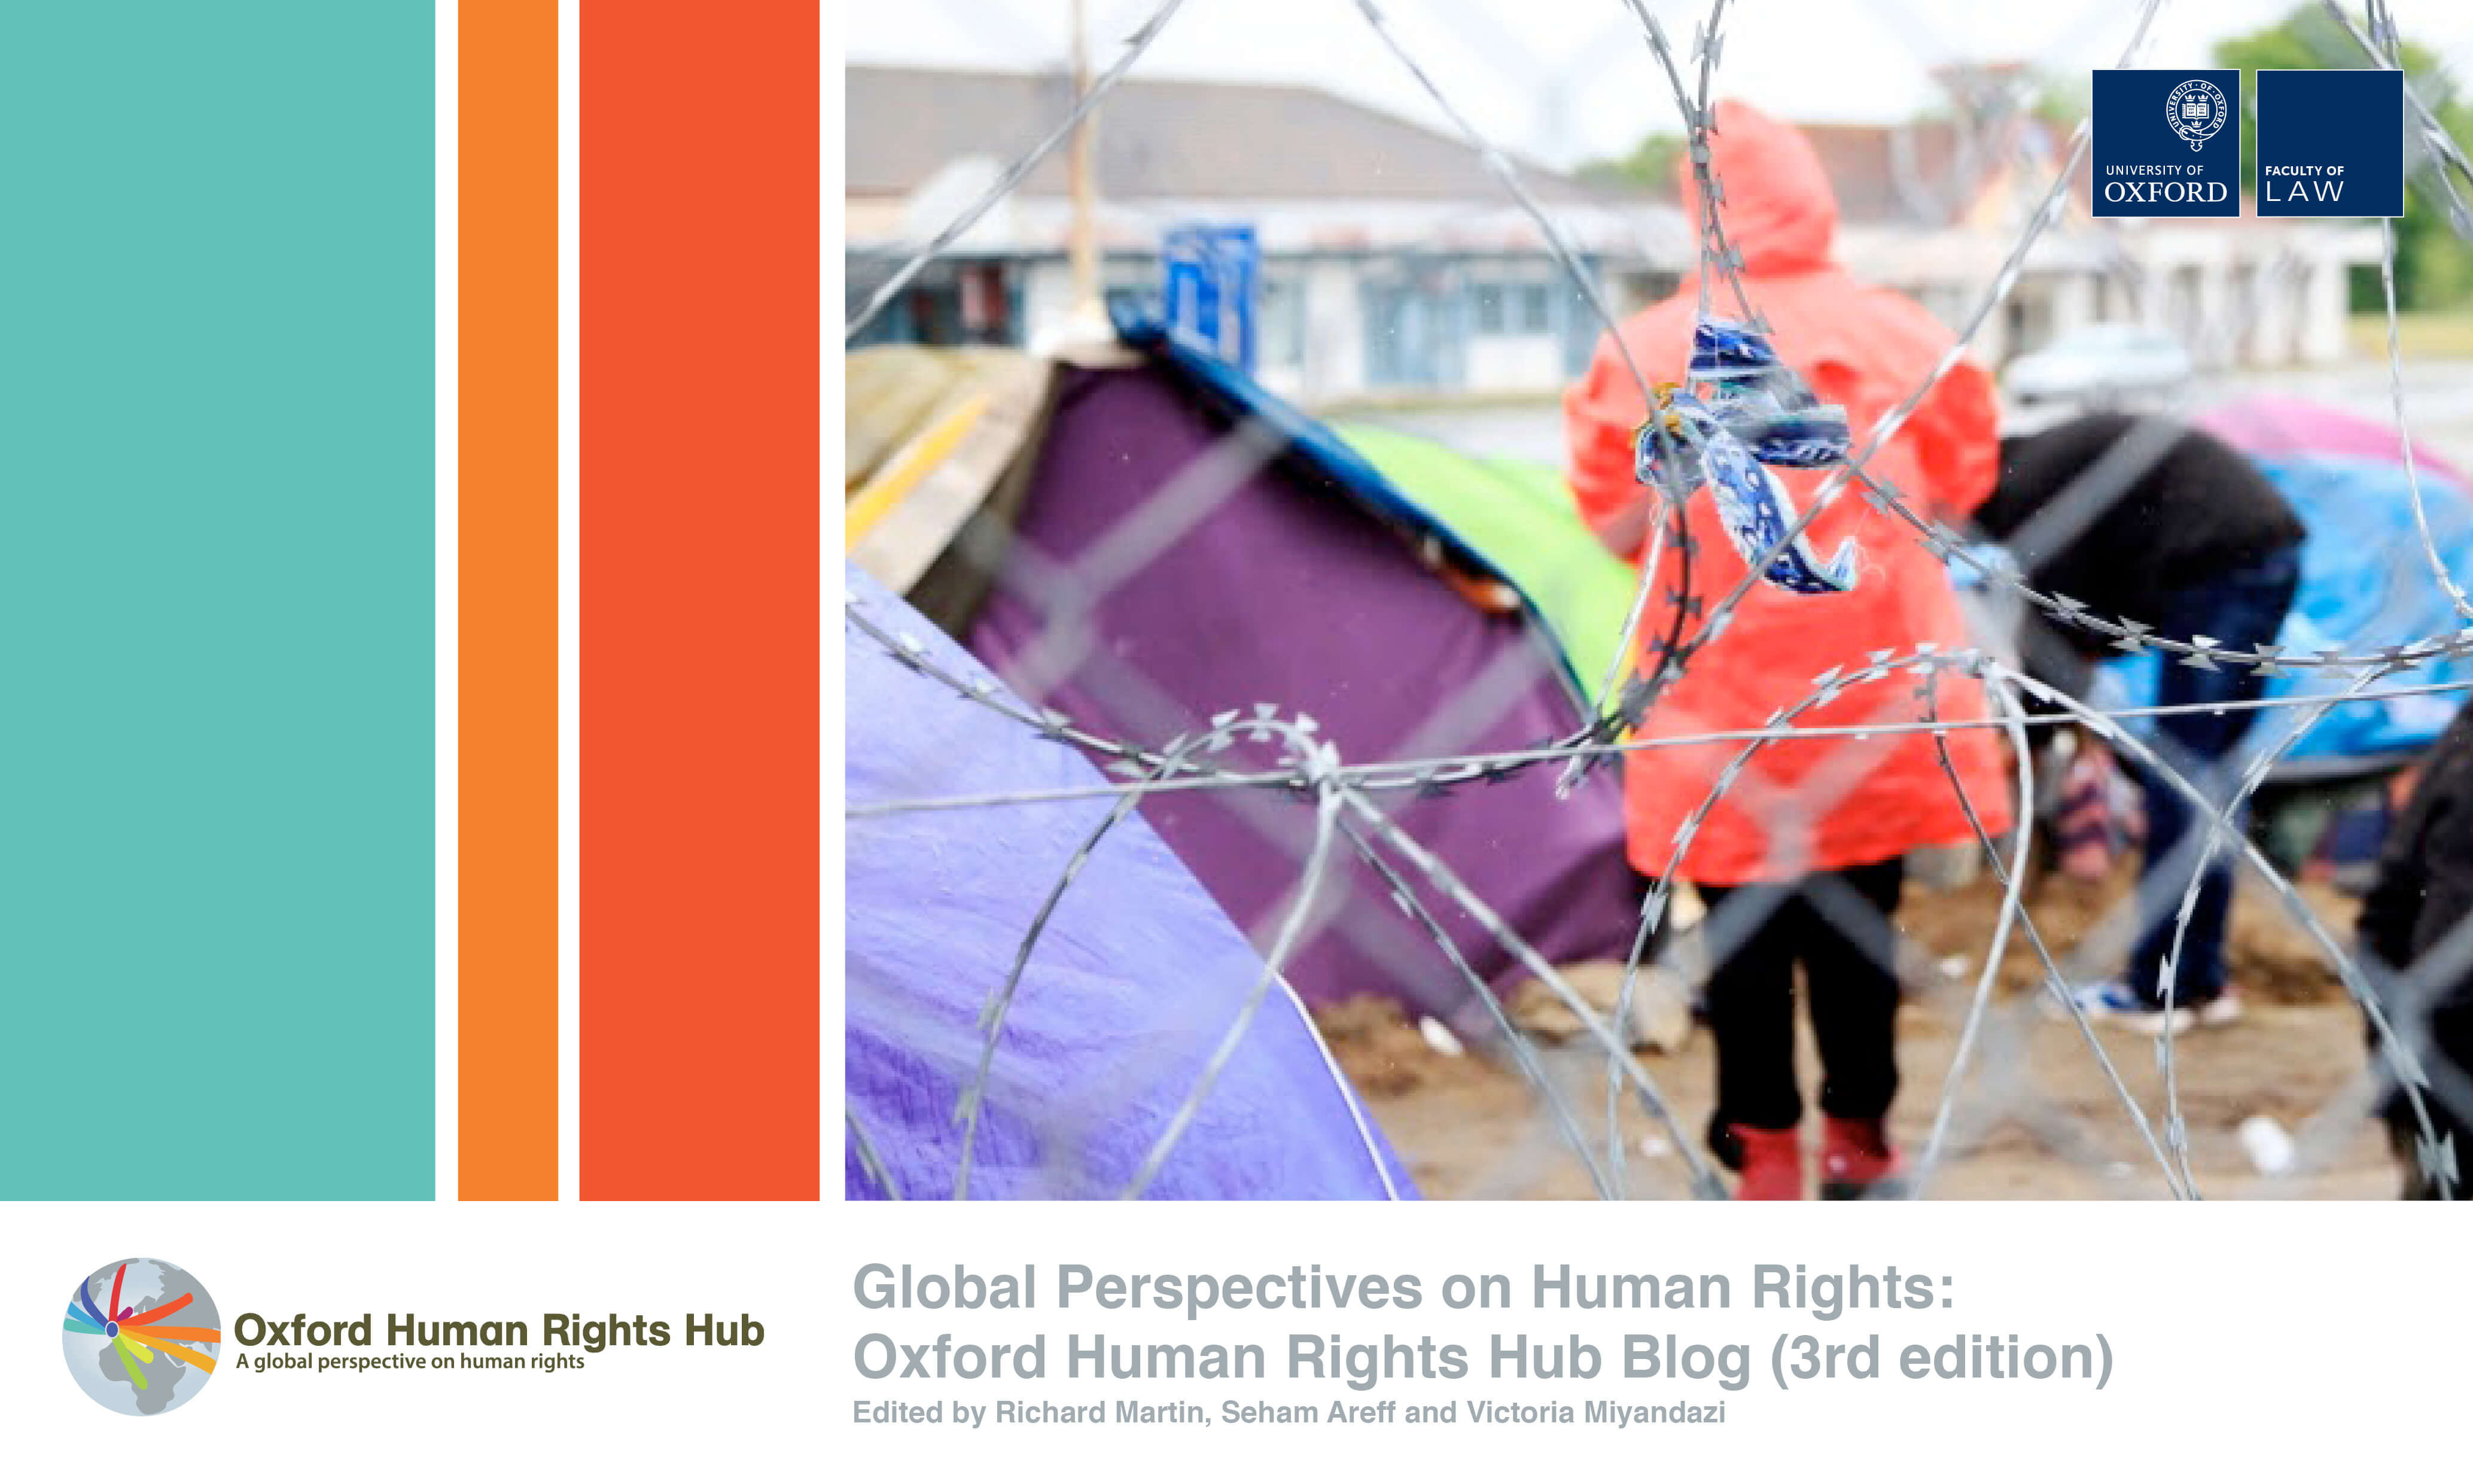 Publication Launch of the Third Edition of the OxHRH Blog Anthology: Global Perspectives on Human Rights